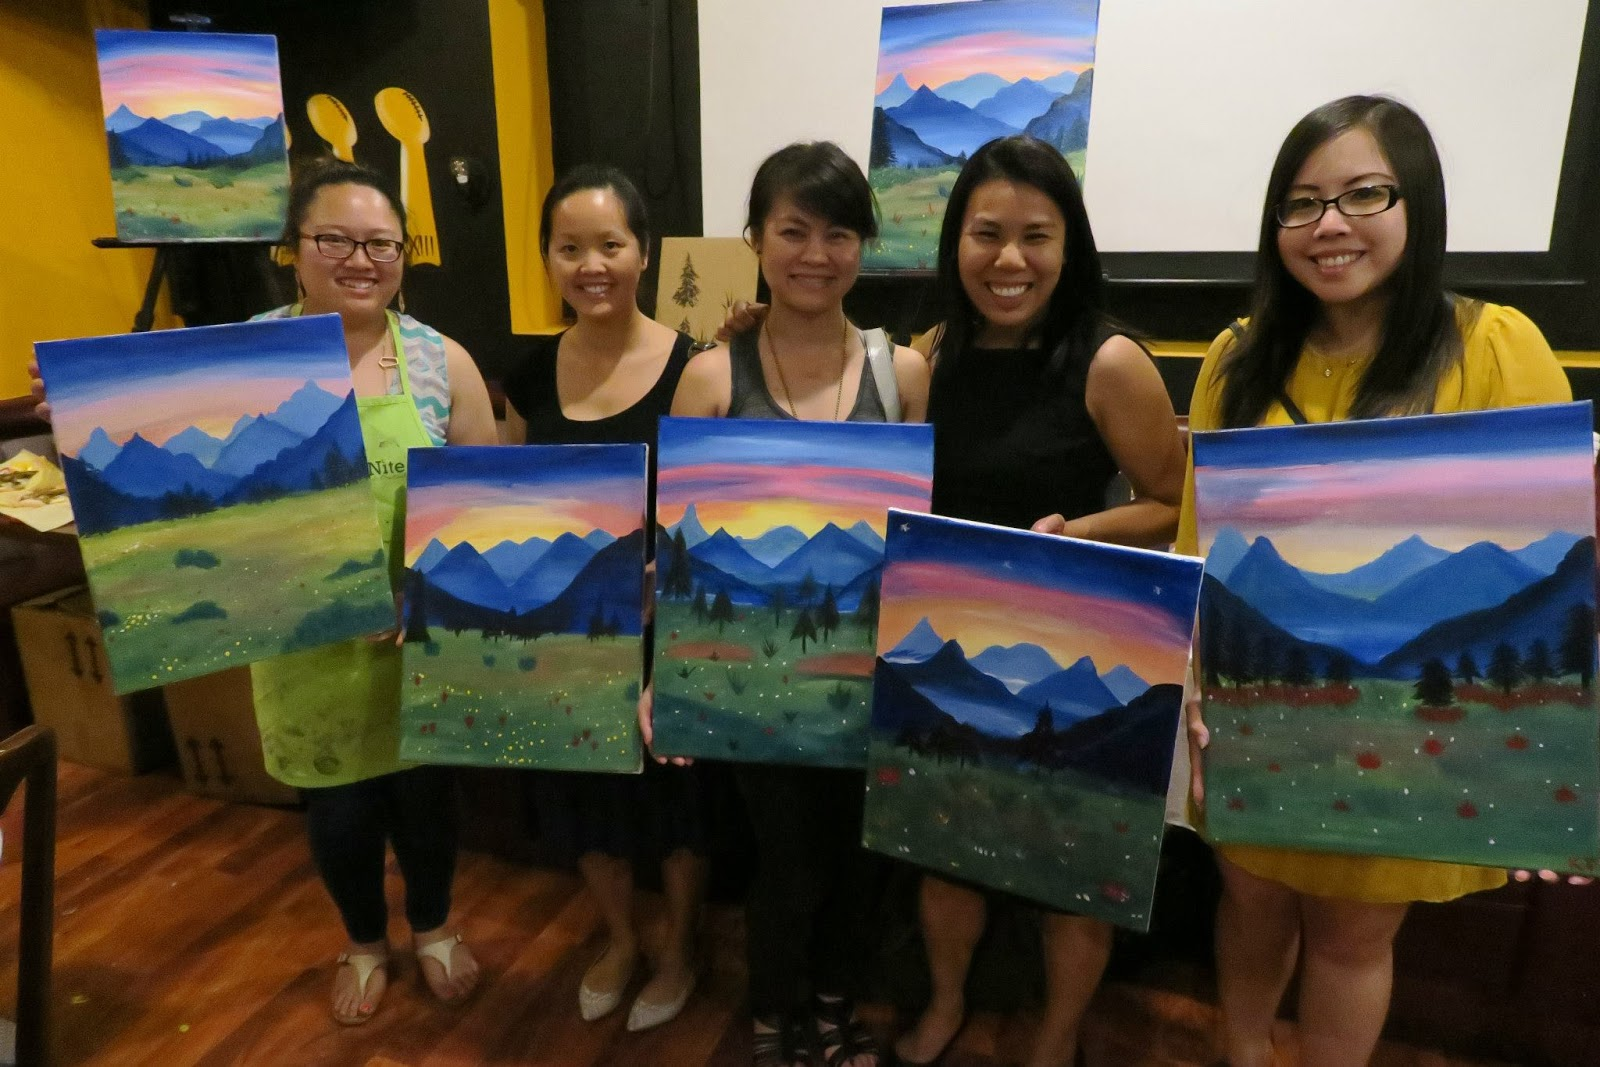 San jose food blog groupon deals for paint nite and glass for Groupon wine and paint